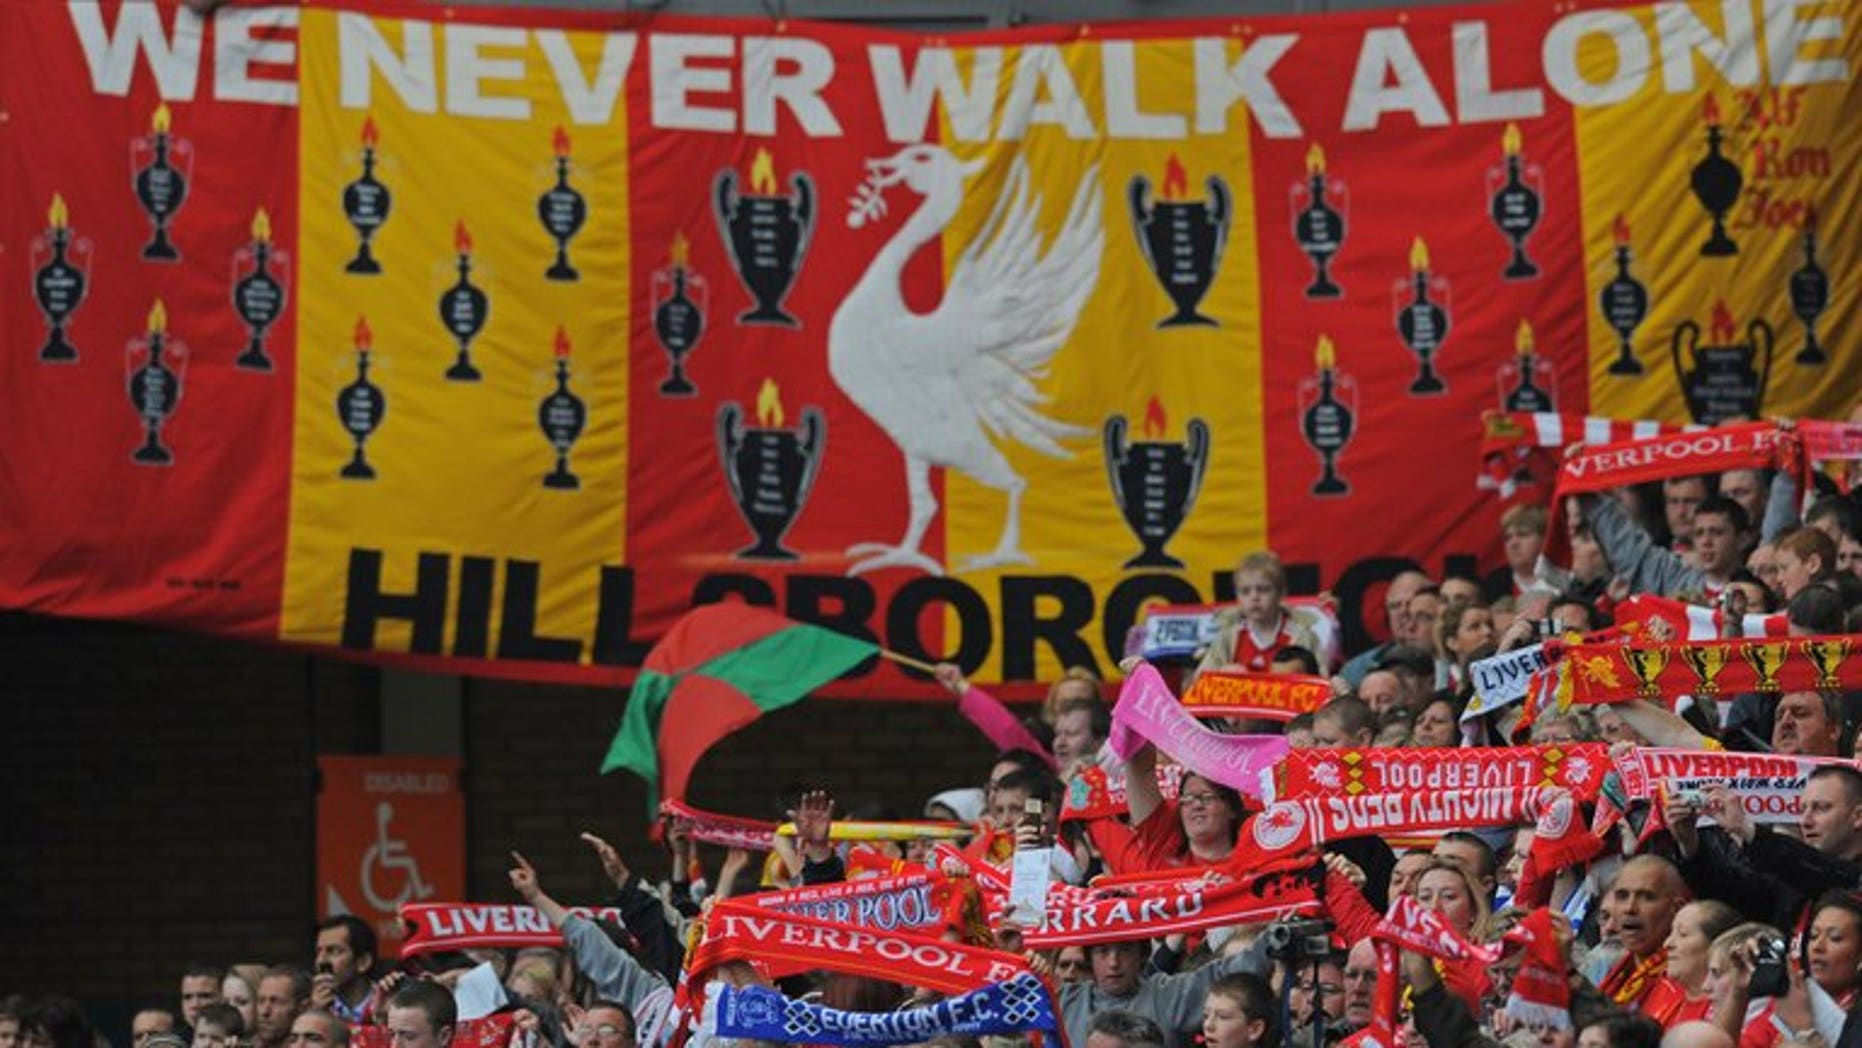 Liverpool supporters attend a Hillsborough memorial service 20 years after the disaster, at Anfield, on April 15, 2009. Police officers investigating the 1989 disaster wanted funds donated in memory of the victims to be spent on holiday flats and gifts for officers, British media reported.